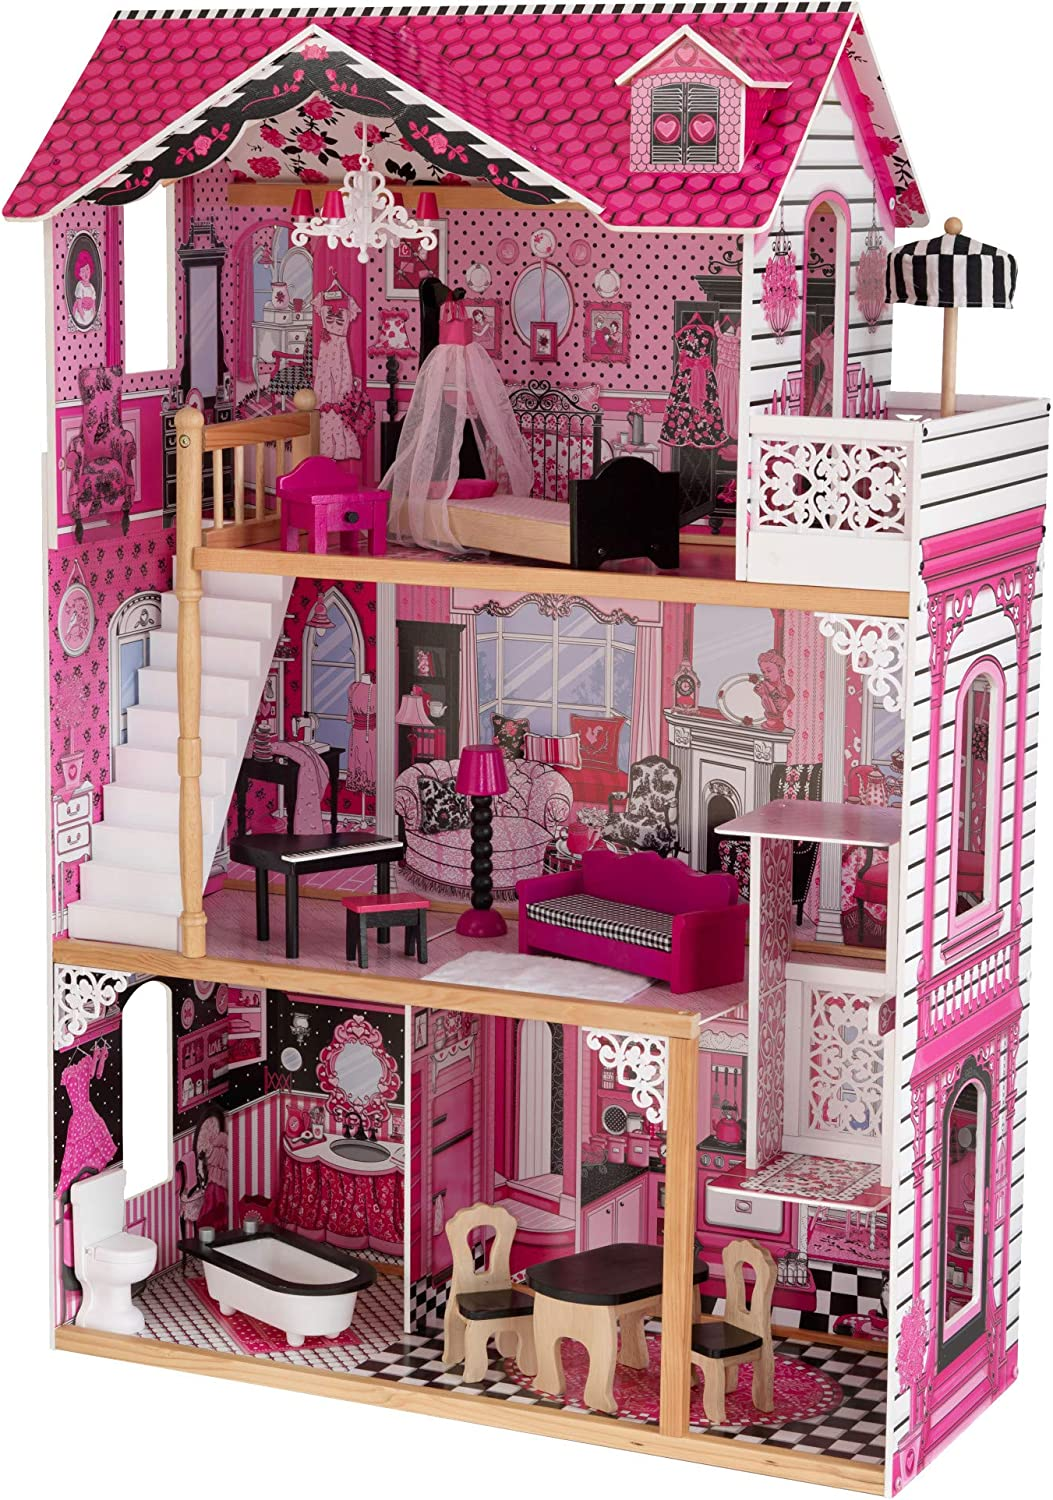 KidKraft Amelia Wooden Dollhouse with Rapid rise Balcony New sales 15-P and Elevator